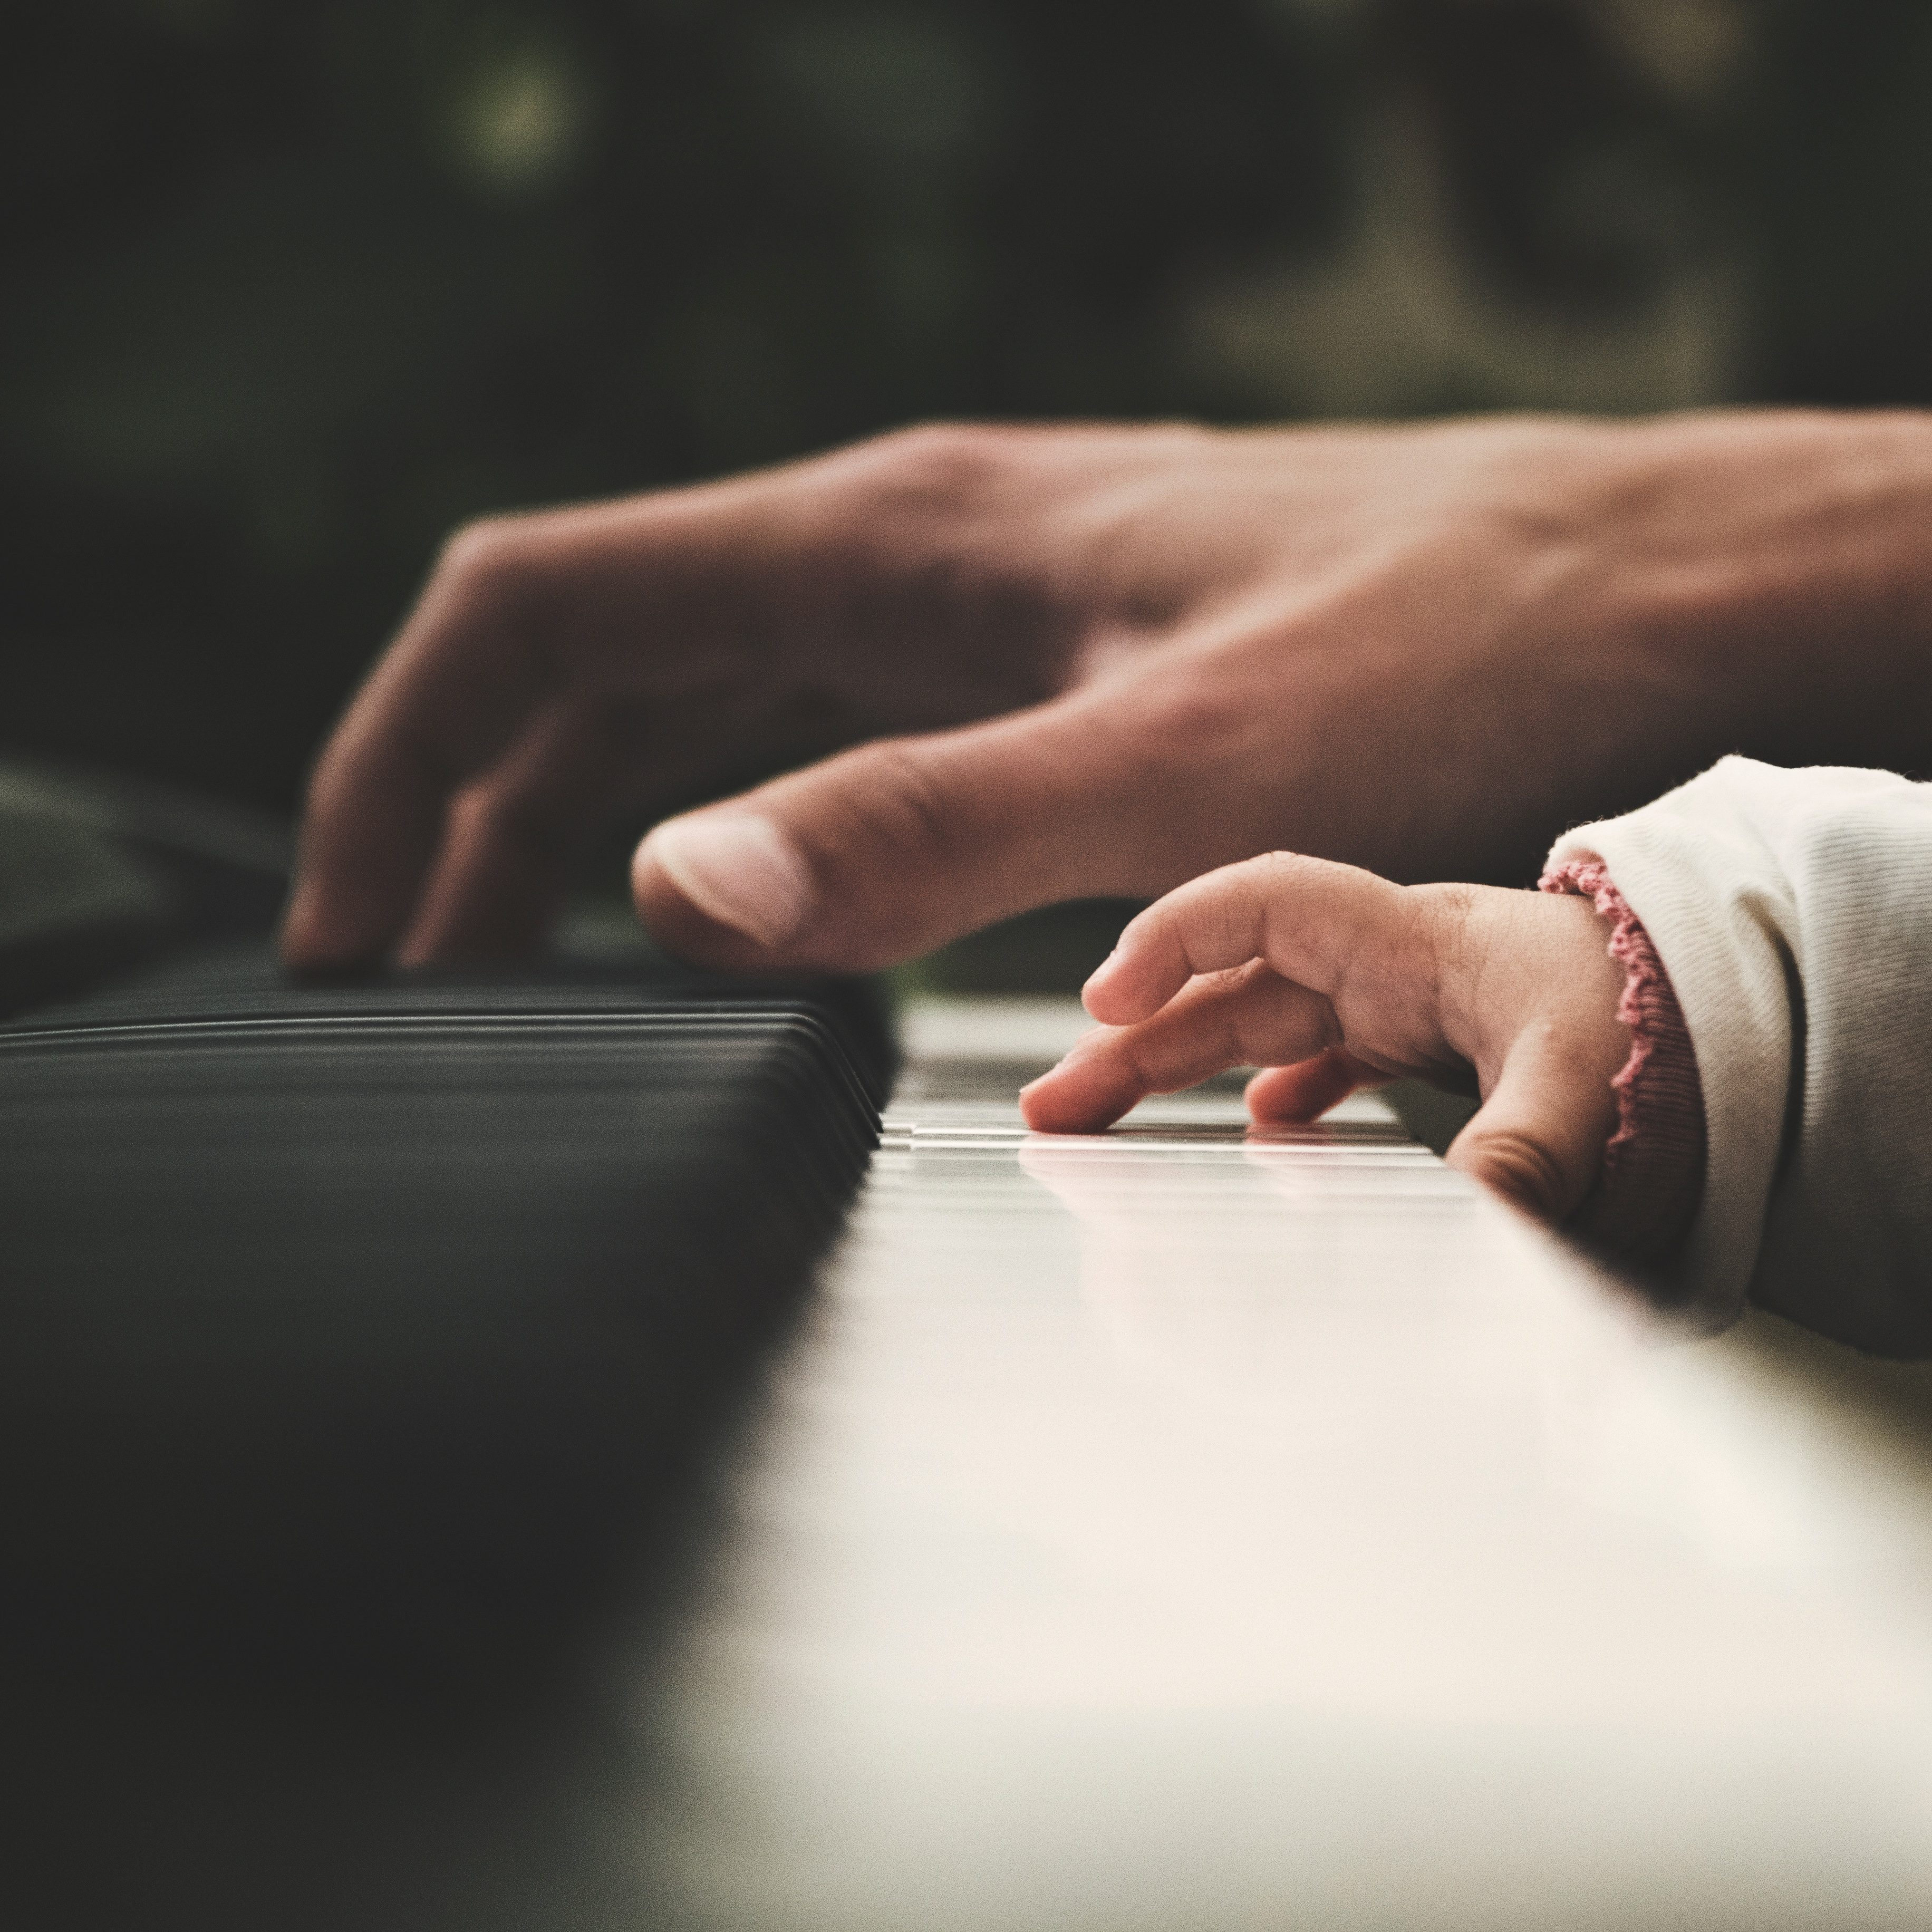 Learn the Piano at our Music Studio in Adelaide